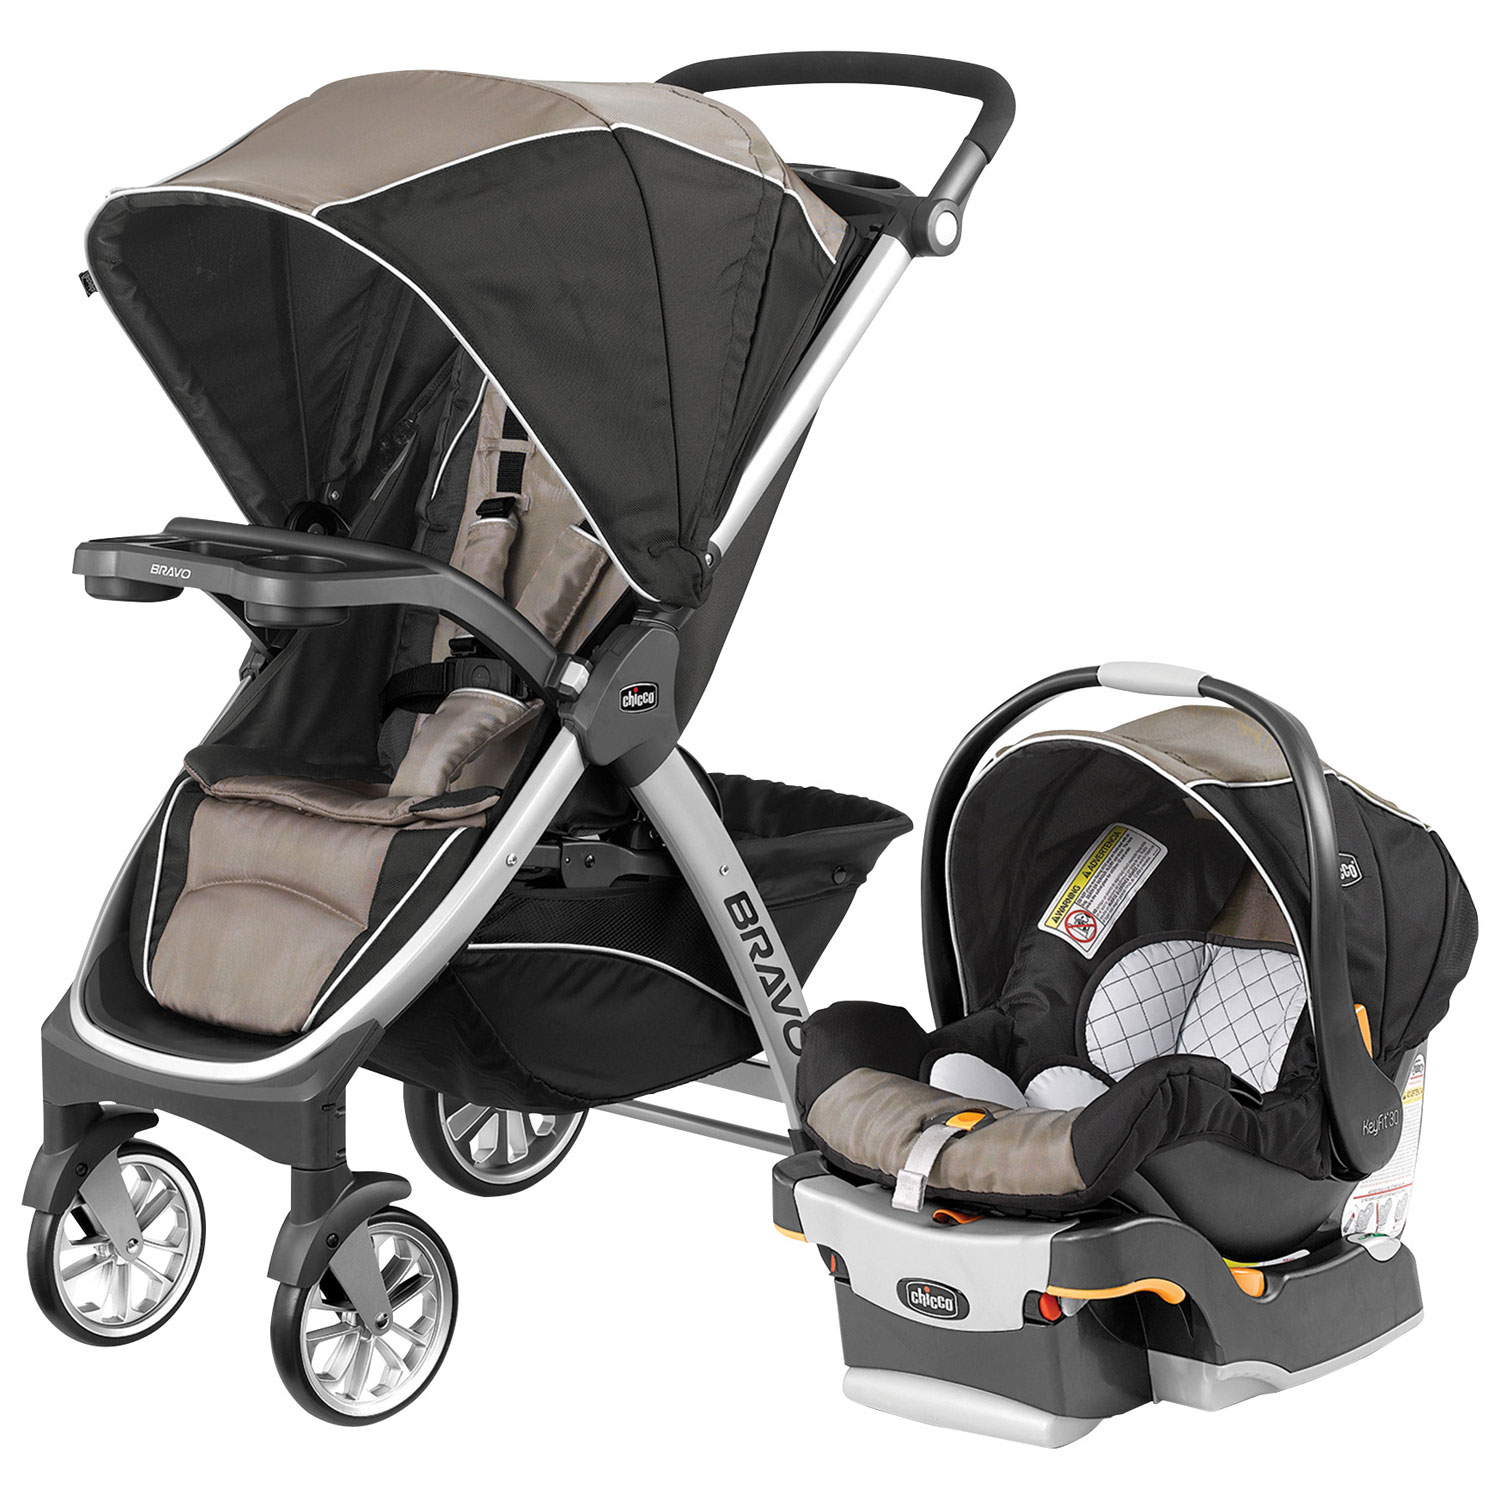 stroller buying guide - chicco bravo travel system